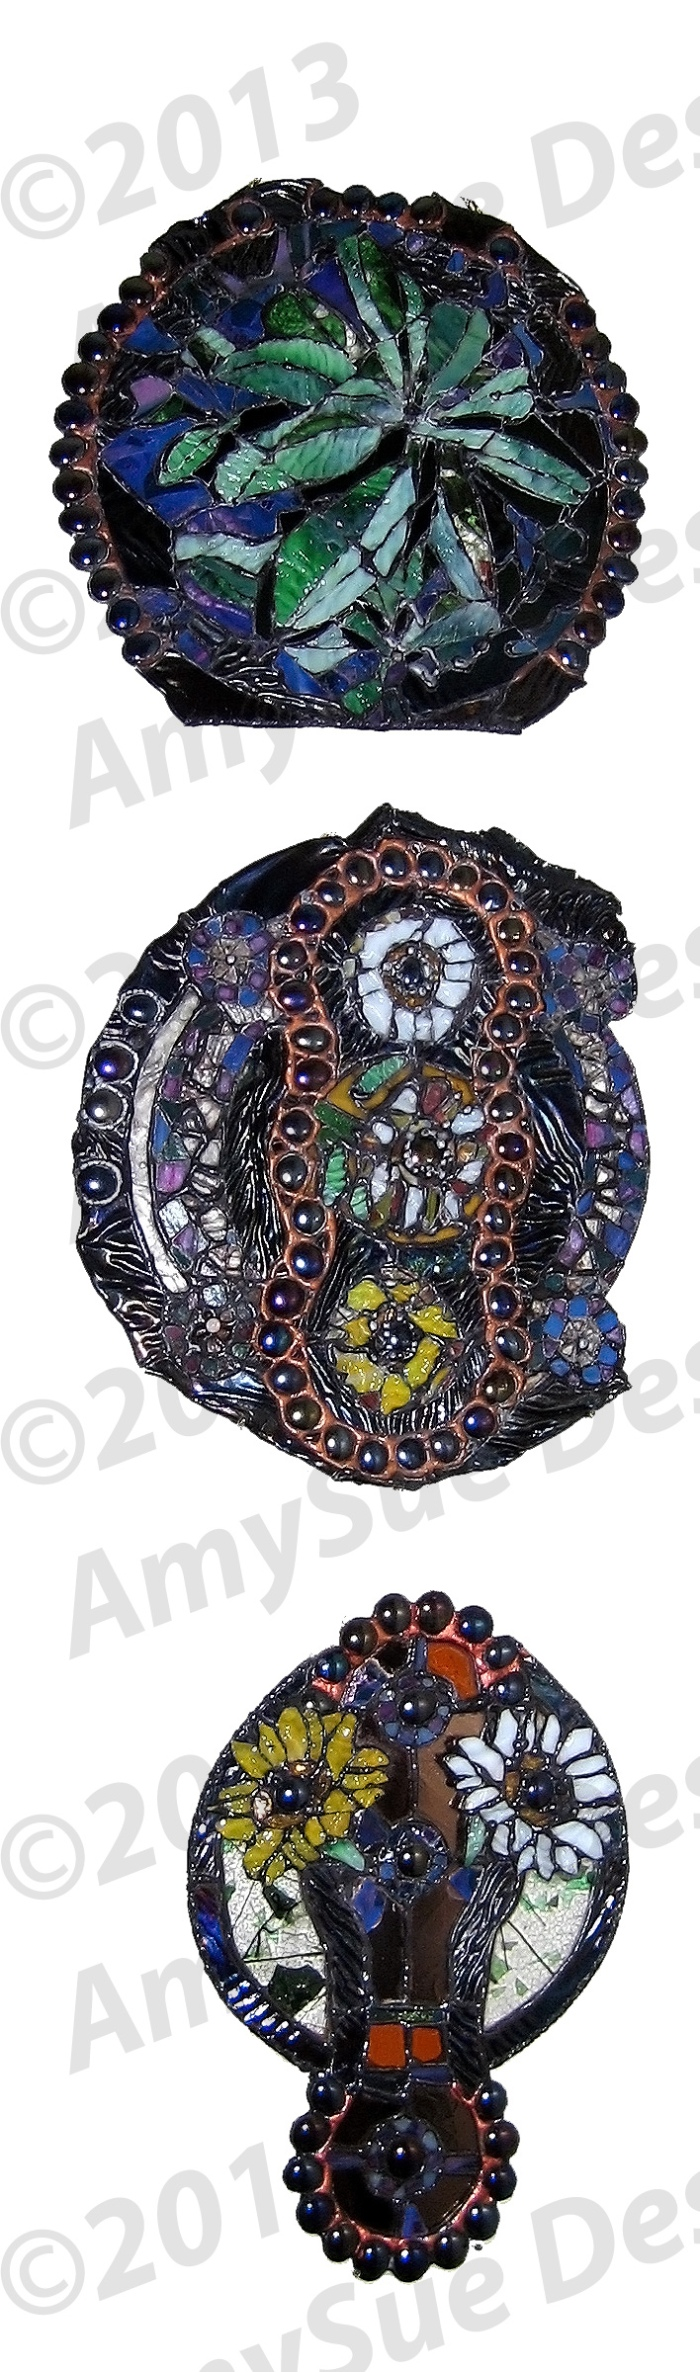 Decorative Stained Glass Sculpture